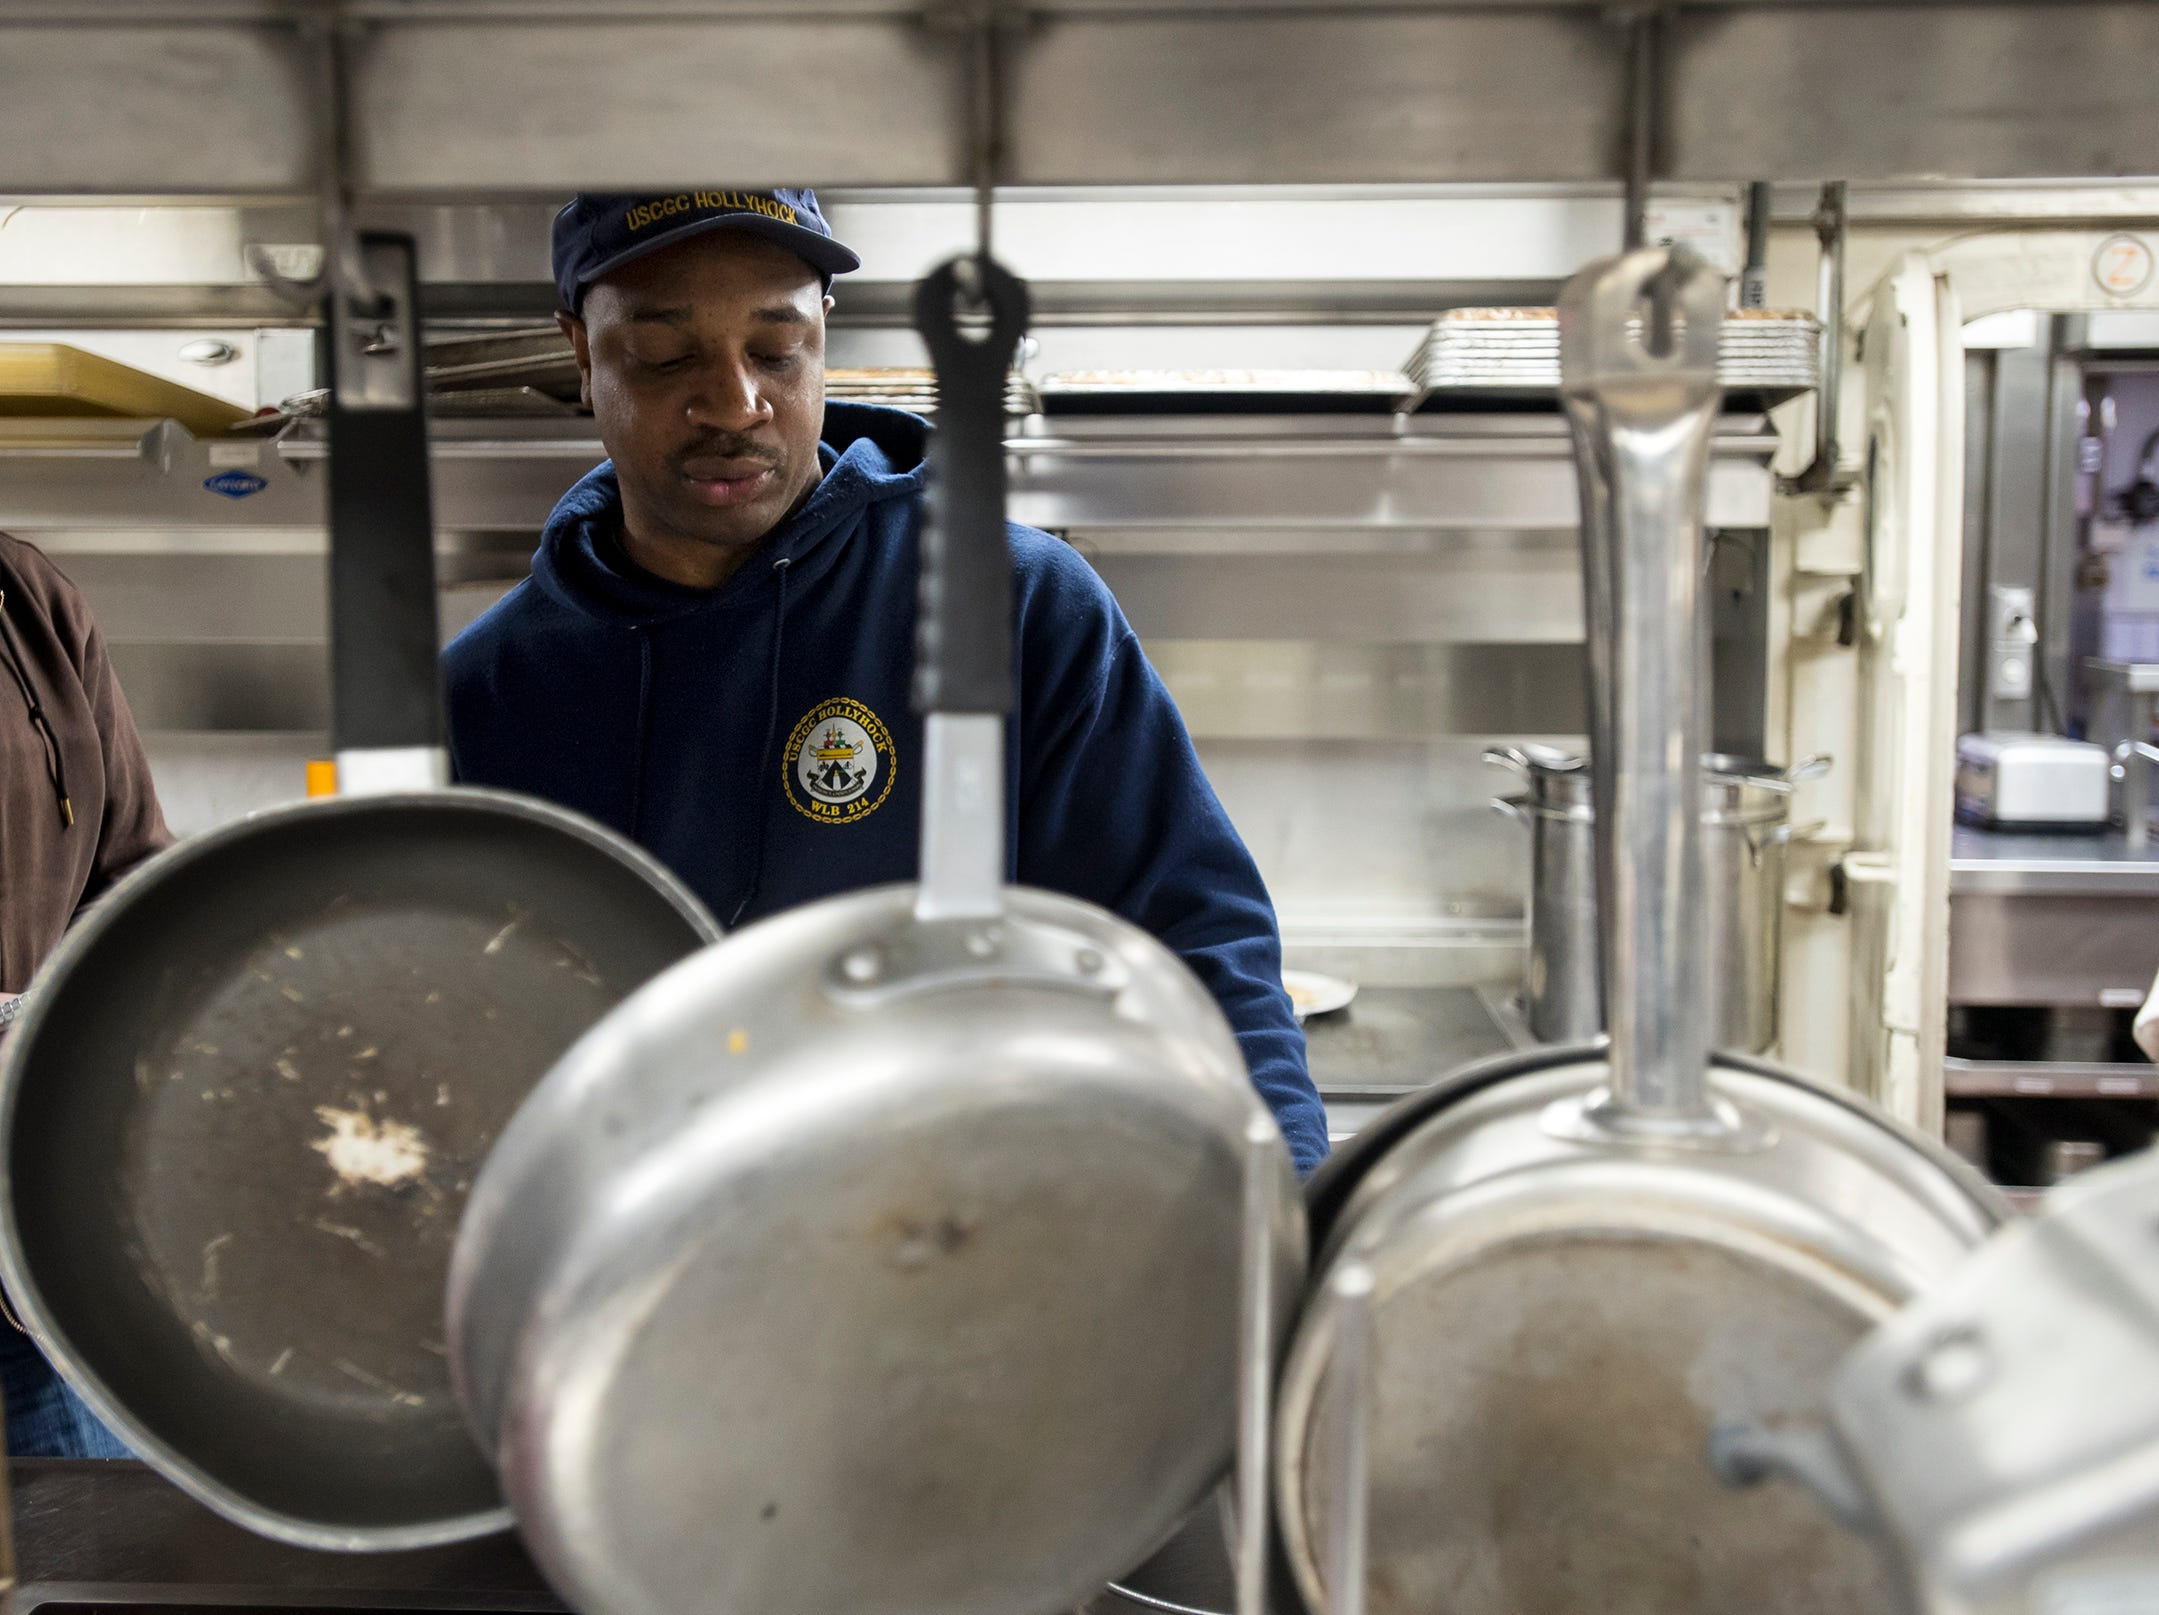 """CS2 Lee Johnson works in the kitchen aboard the USCGC Hollyhock after lunch Wednesday, Feb. 20, 2019. Johnson, of Alabama, said even though the kitchen works to make everything from scratch, the crew might give the cooks a hard time if a meal isn't satisfactory. """"We're the only job that gets judged three times a day,"""" Johnson said."""